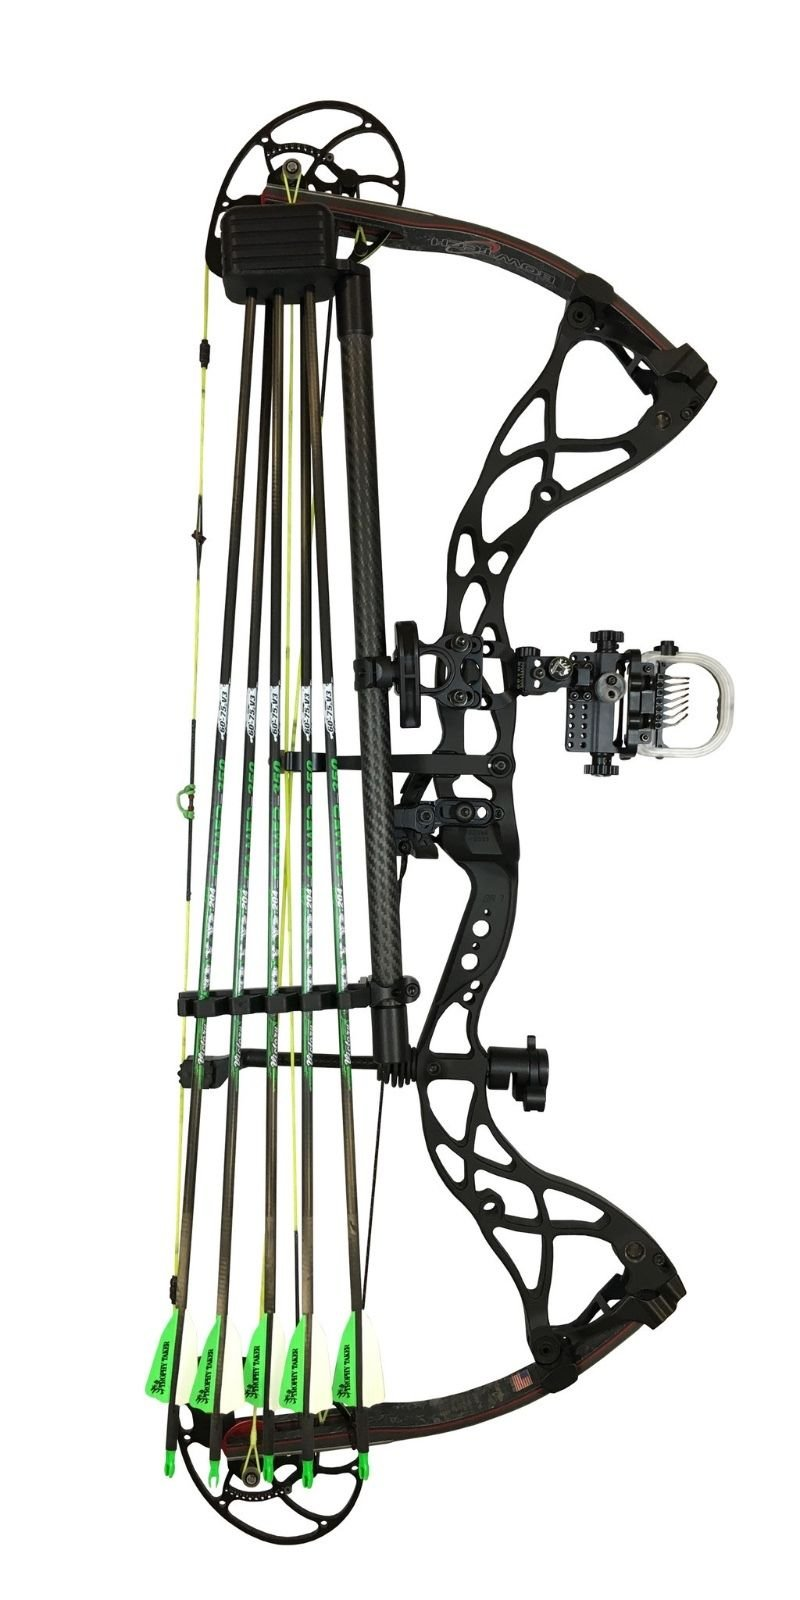 Option Archery Carbon Quivalizer (5 Arrow Capacity) by Option Archery